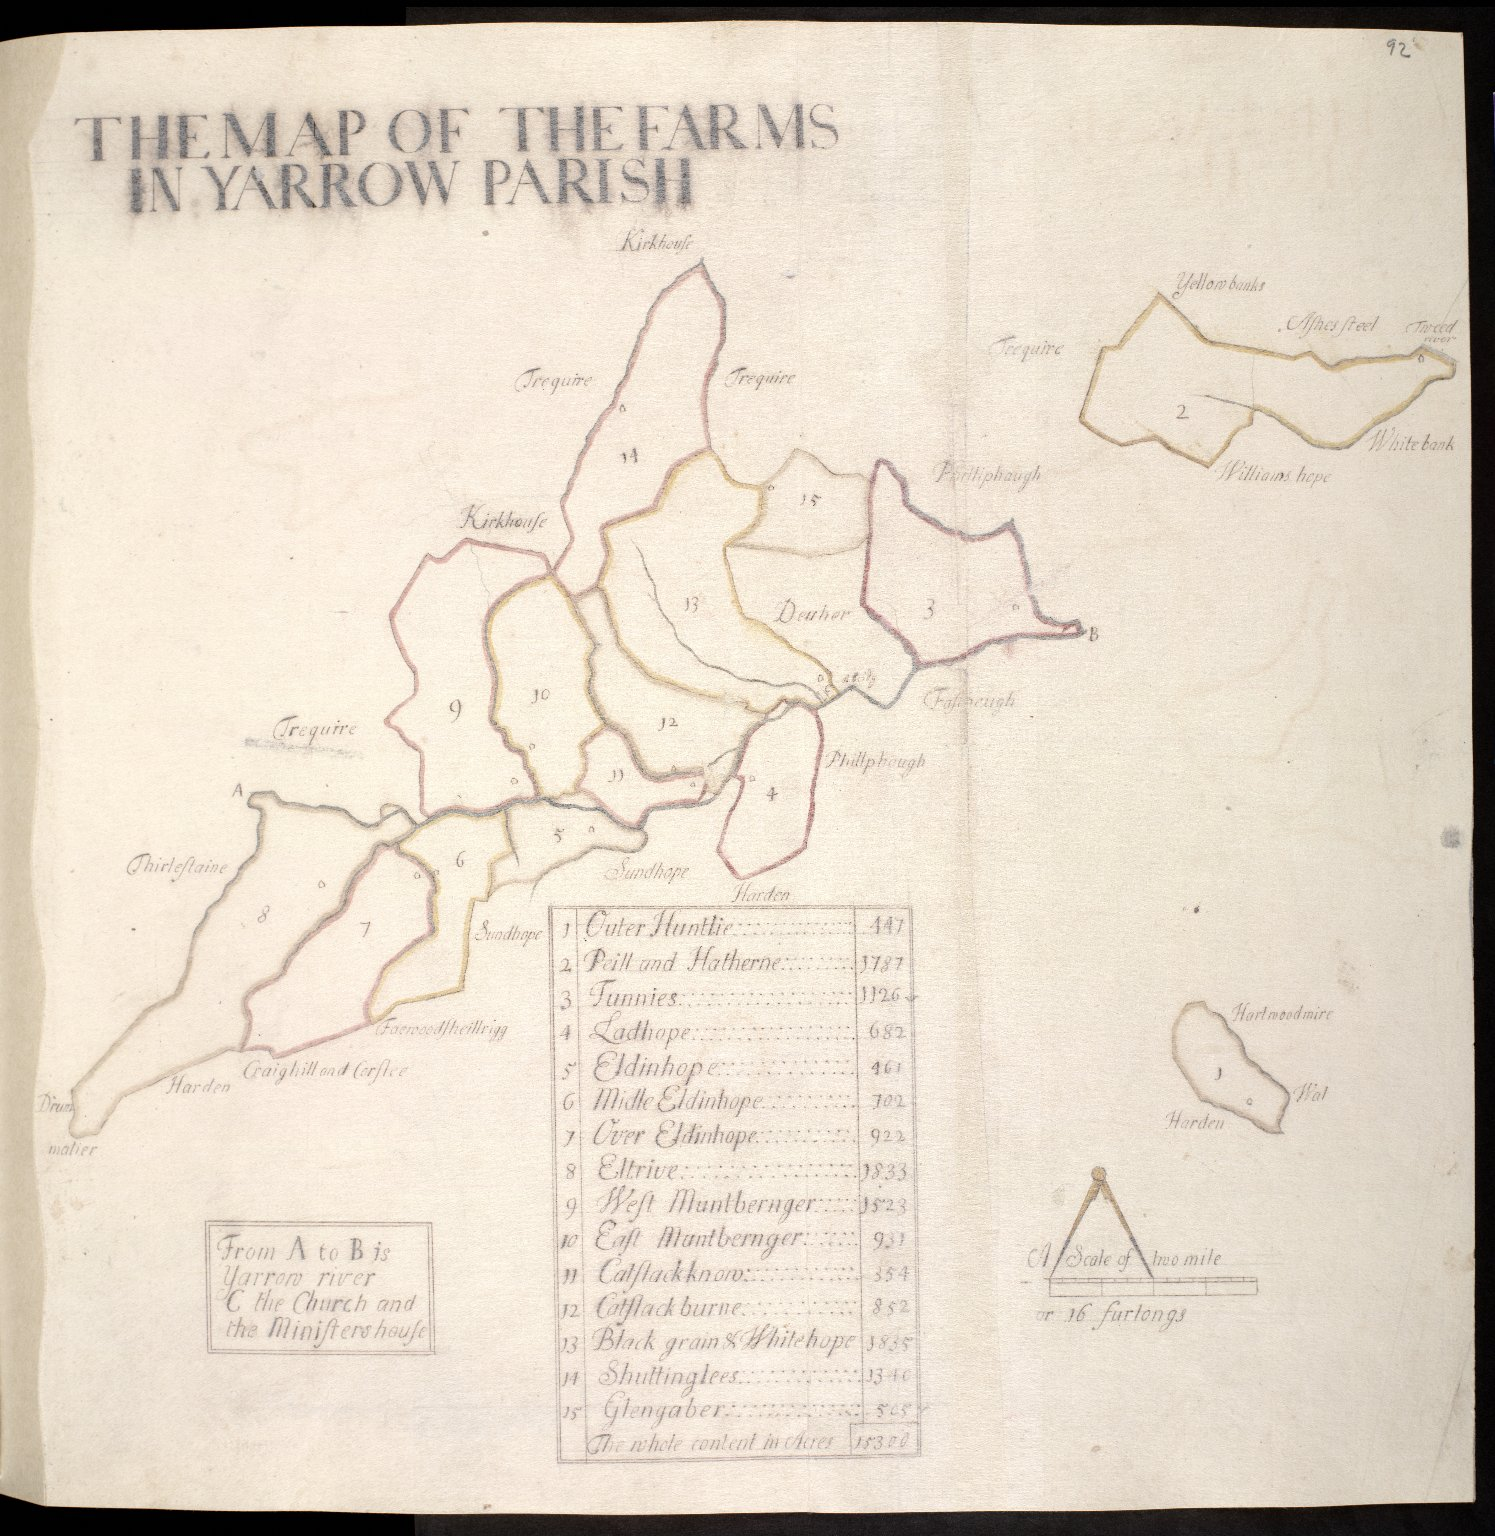 The Map of the Farms in Yarrow Parish [1 of 1]